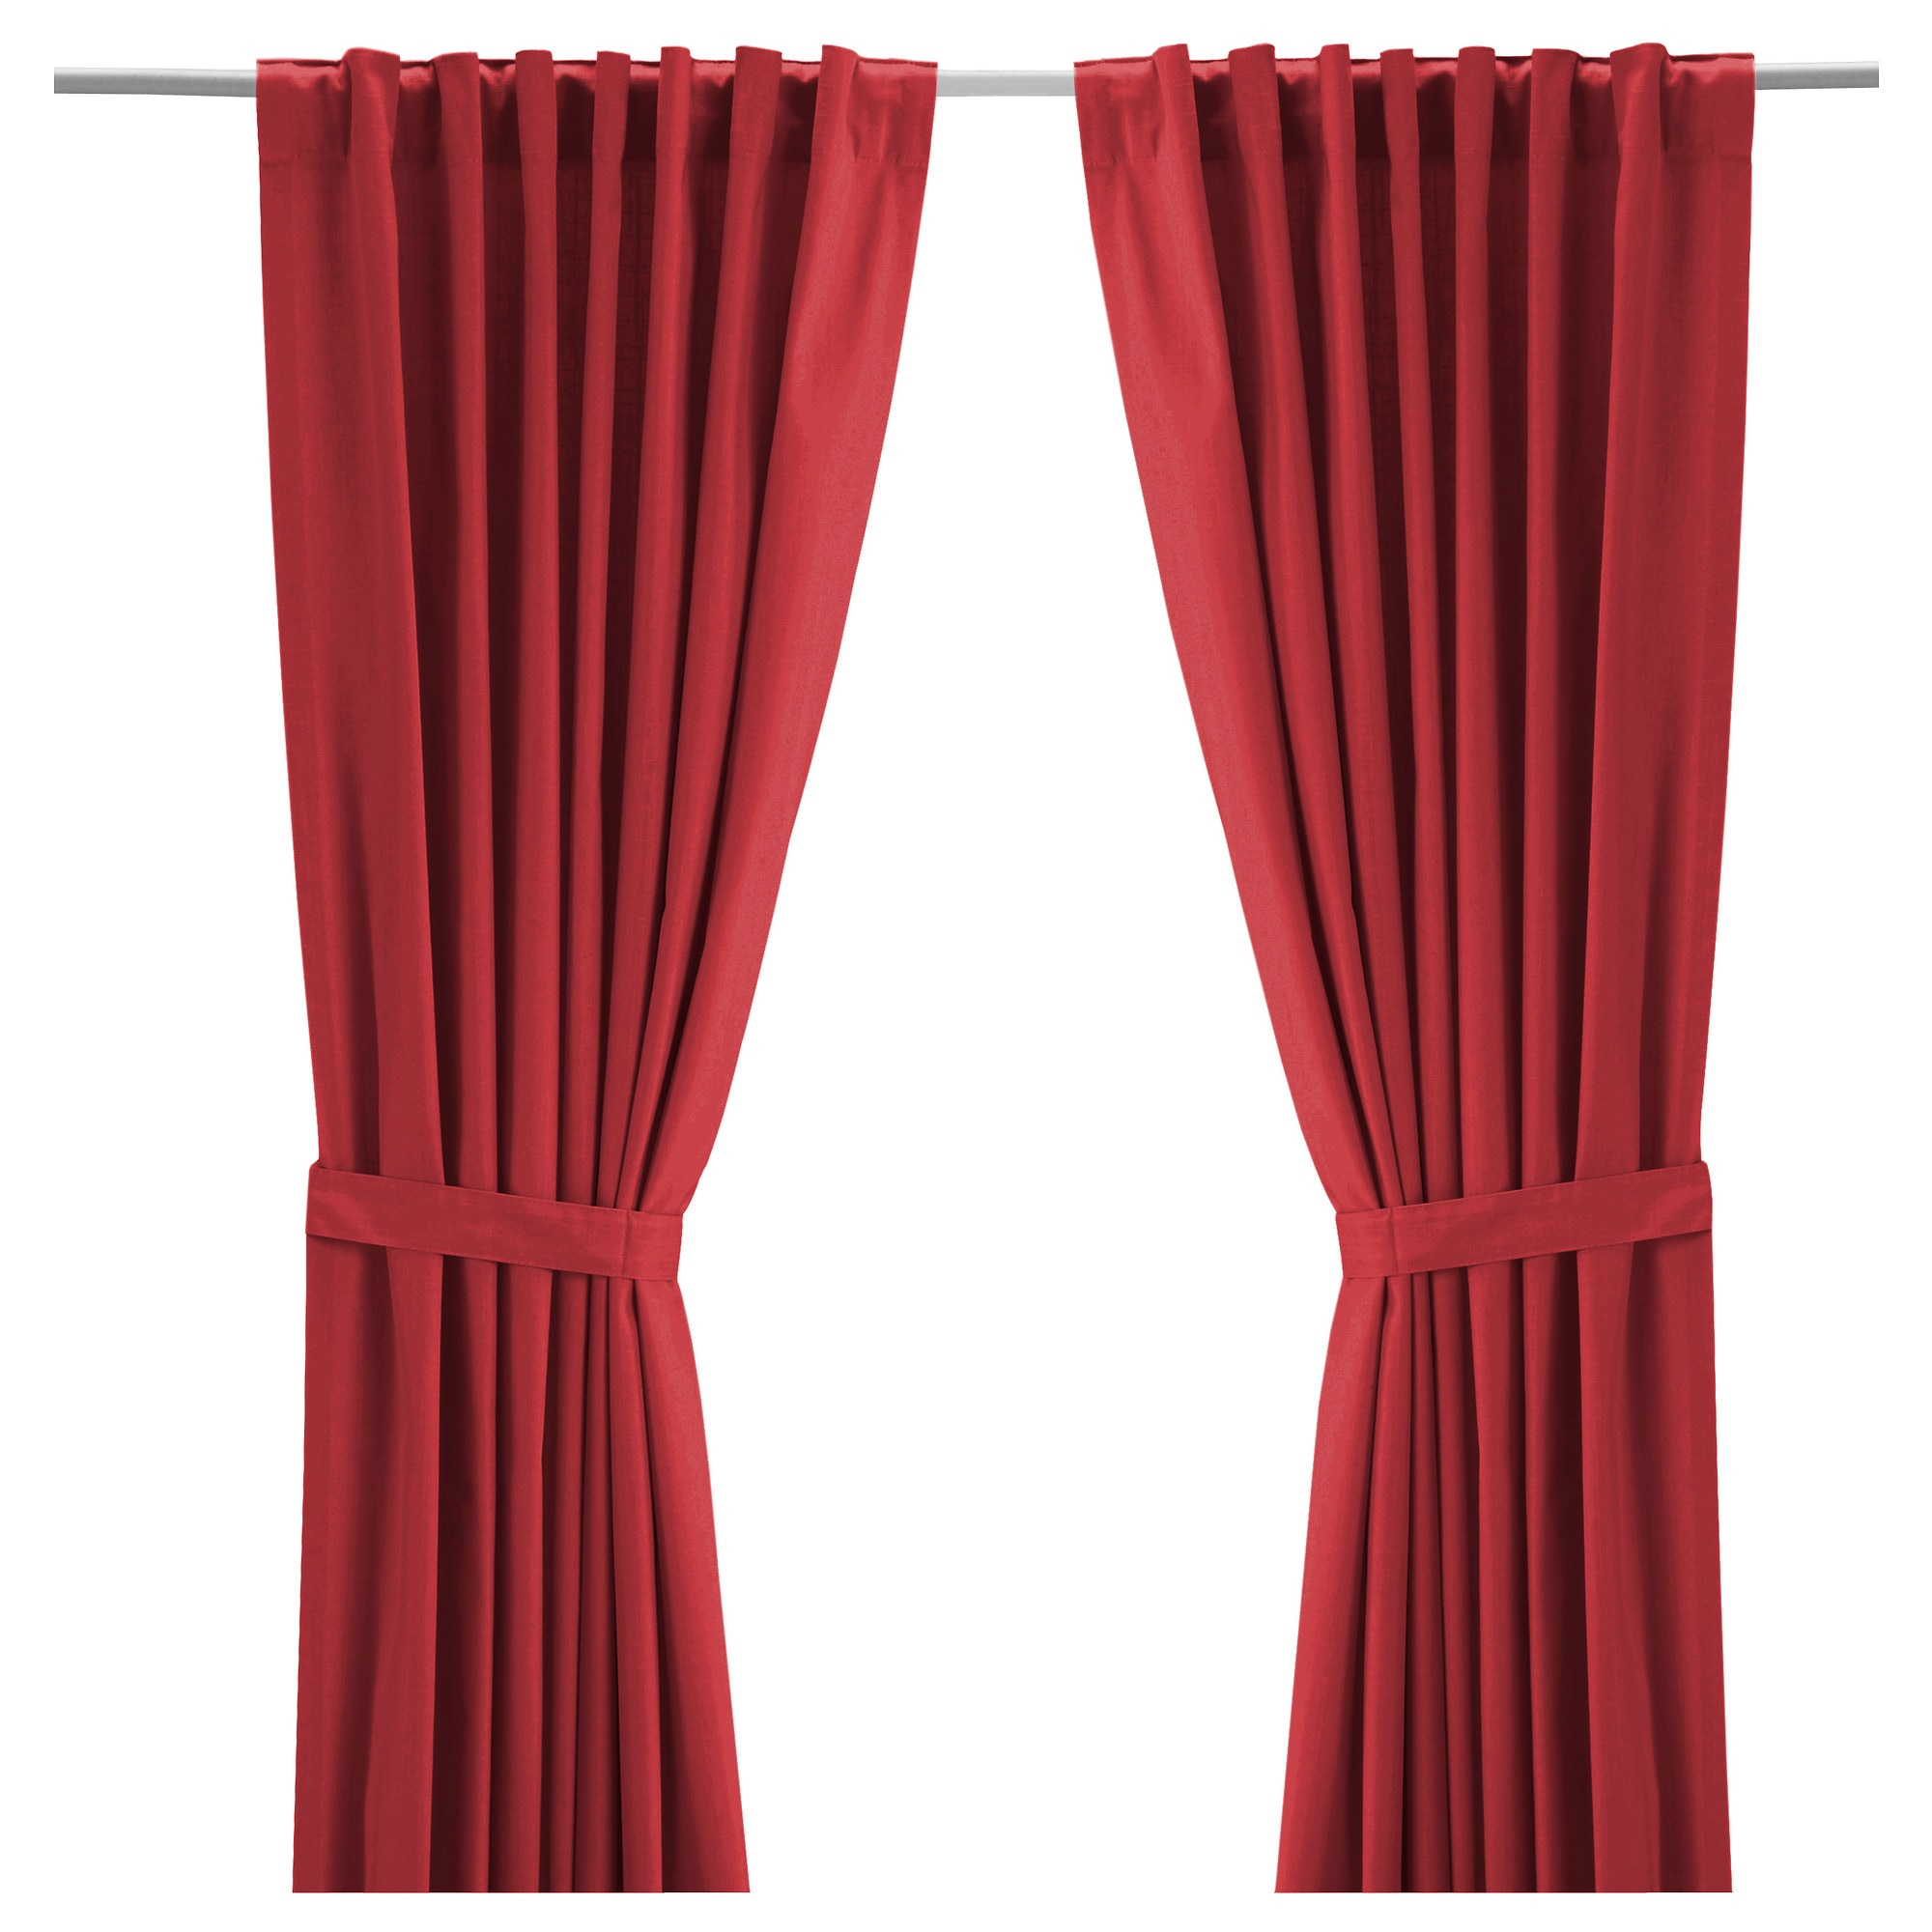 RITVA Curtains with tie-backs, 1 pair - IKEA